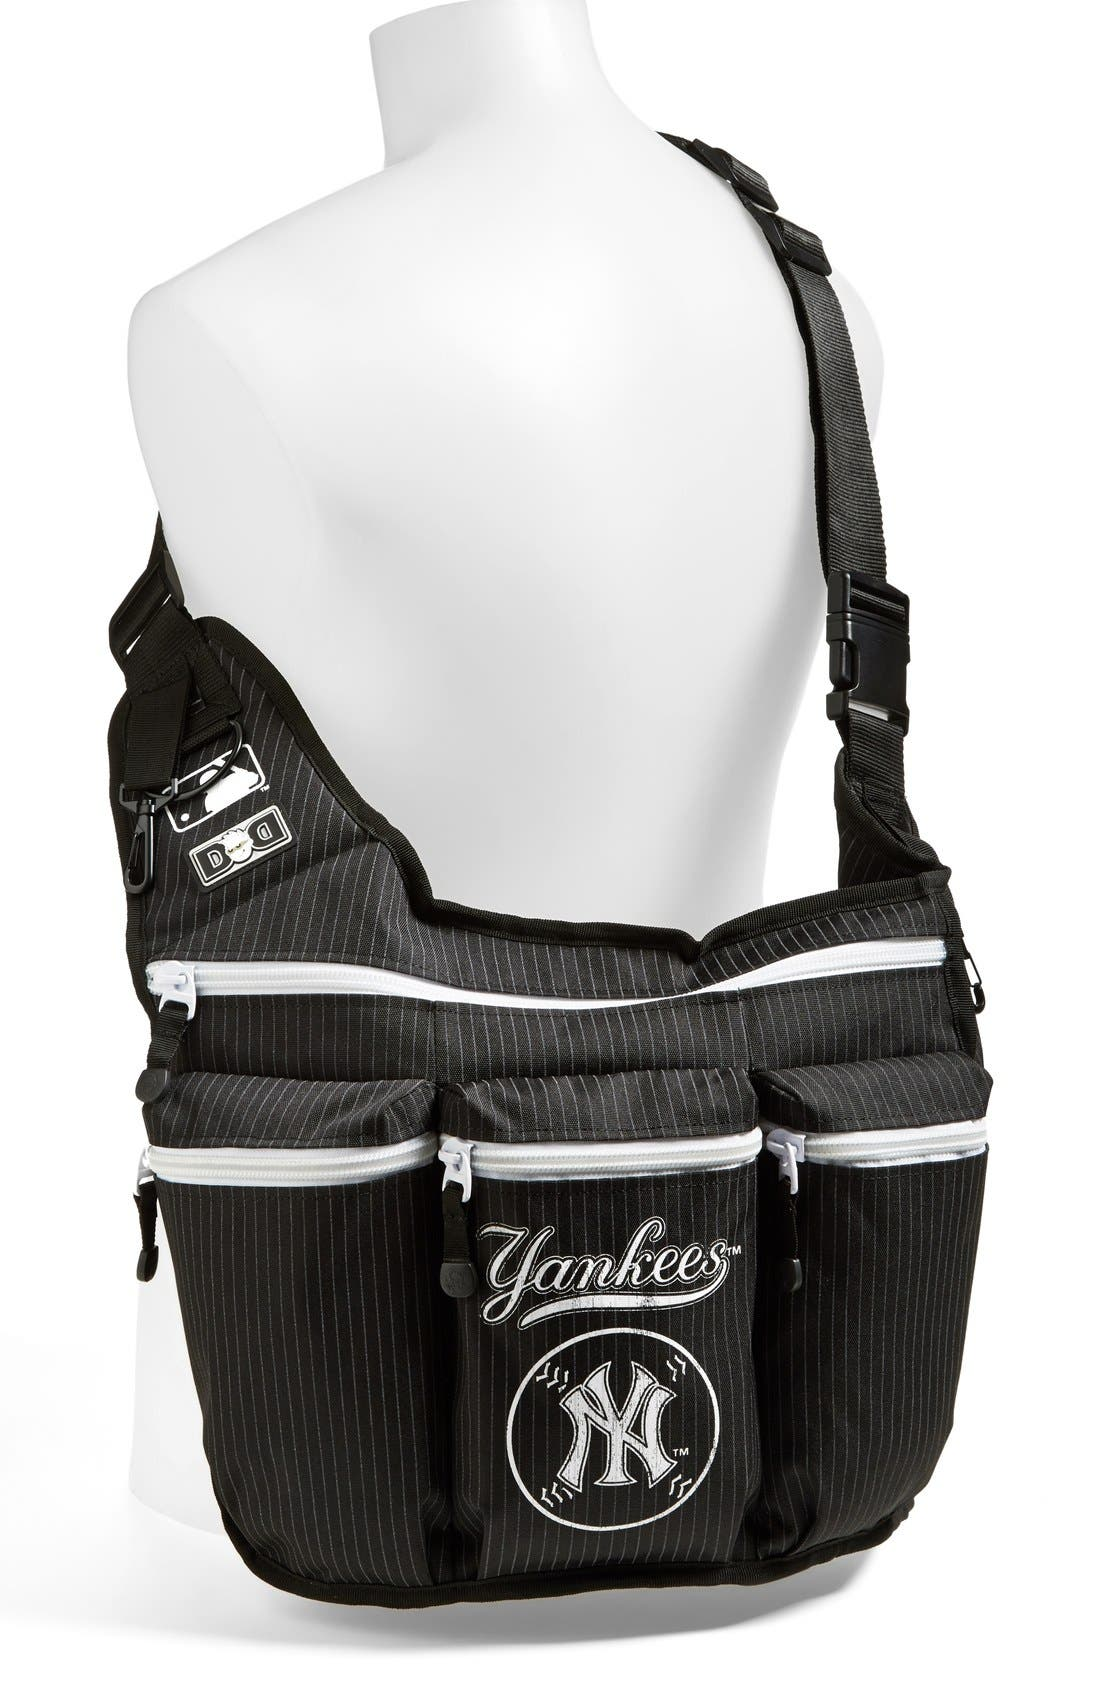 Alternate Image 2  - Diaper Dude 'New York Yankees' Messenger Diaper Bag